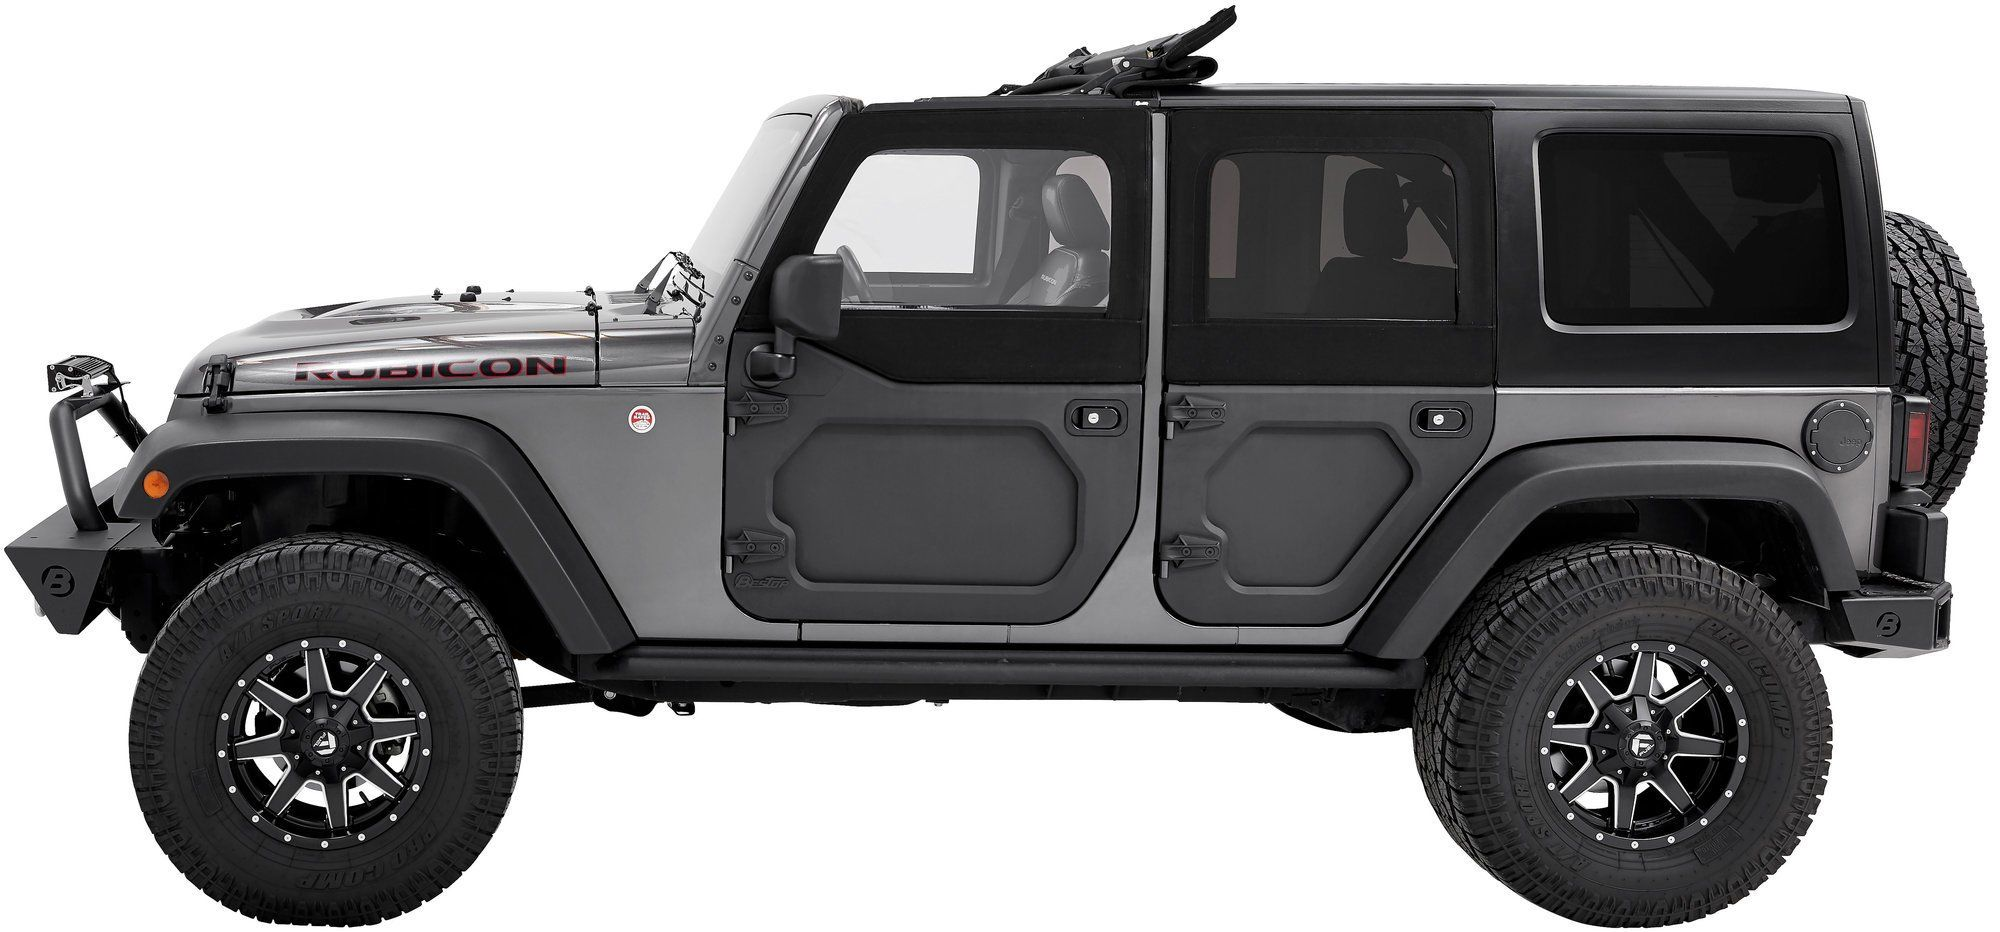 Pin On Jeep Wrangler Back Country Build